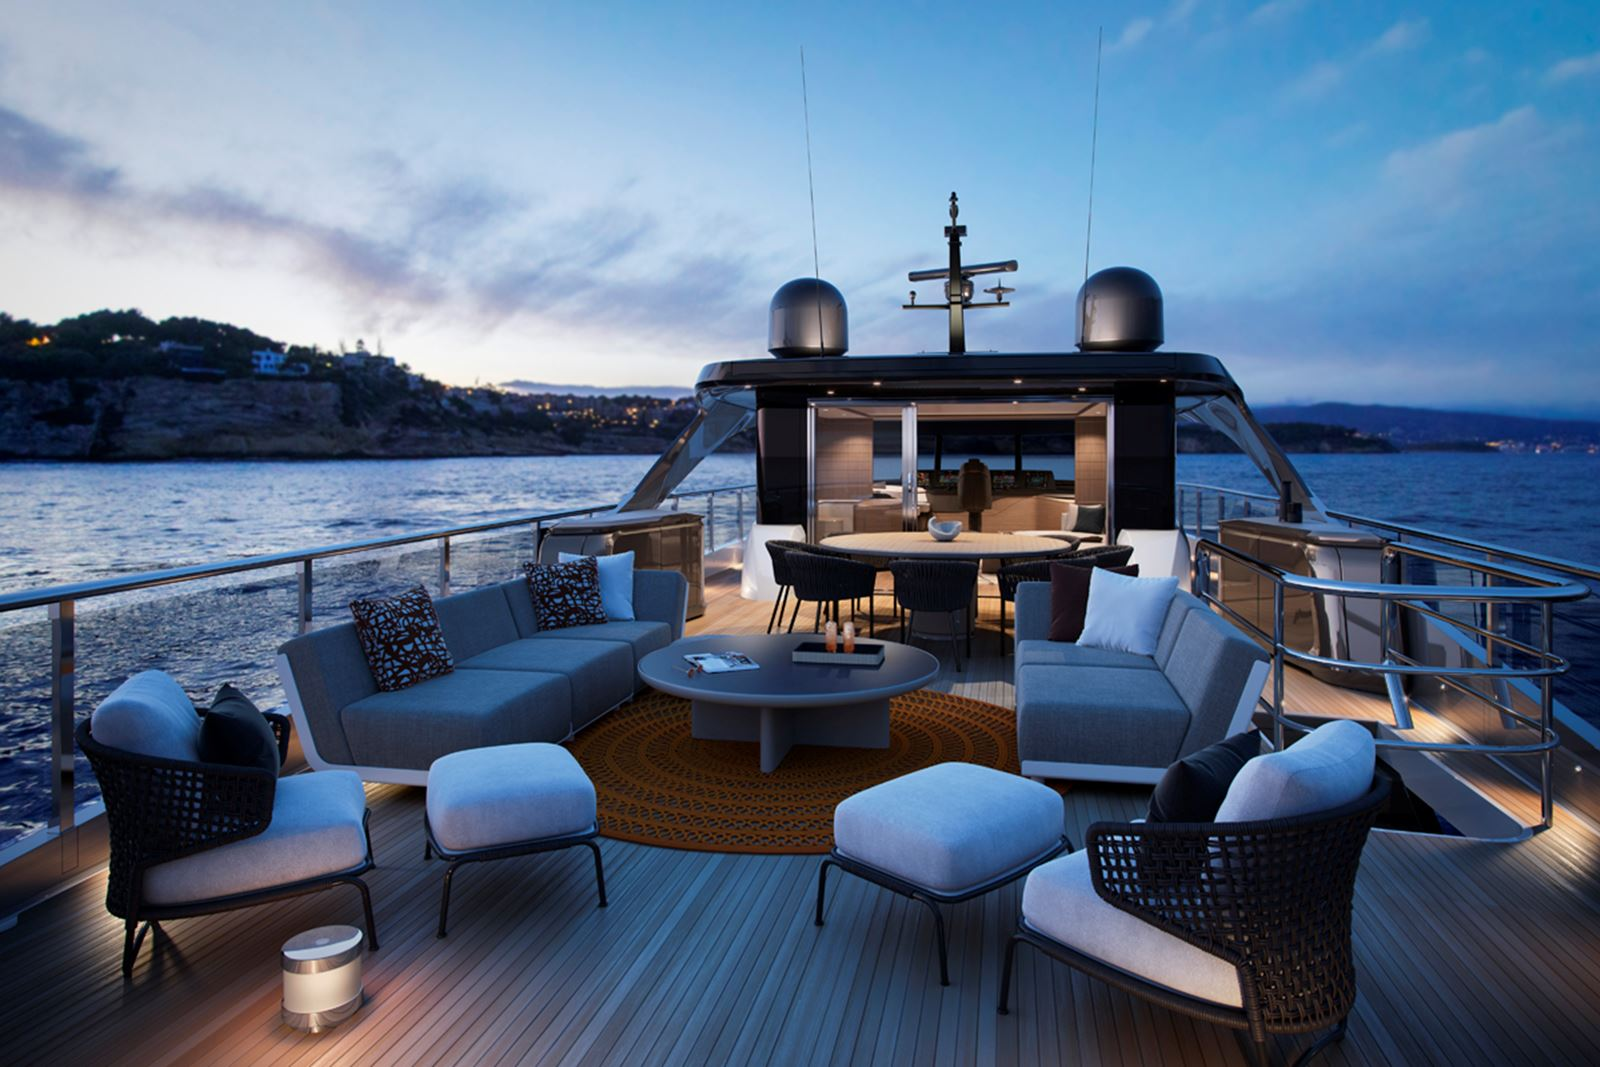 Fantastic expansive flybridge with plenty of space to relax